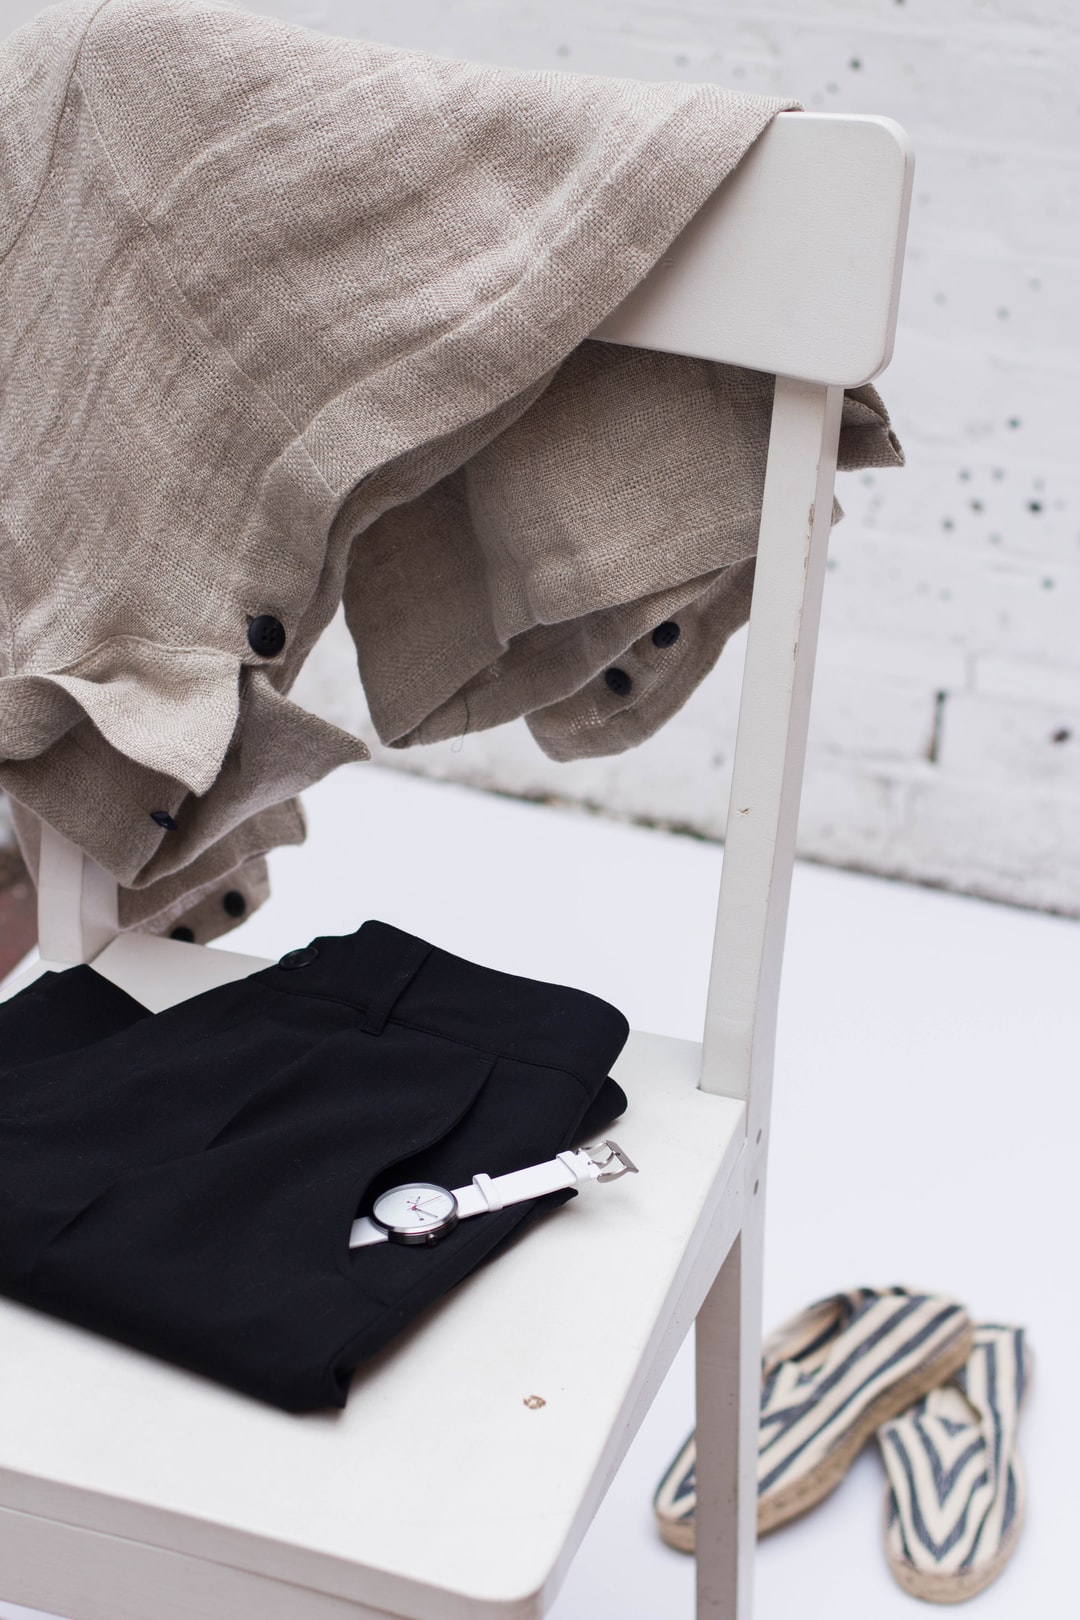 Clothing draped on chair